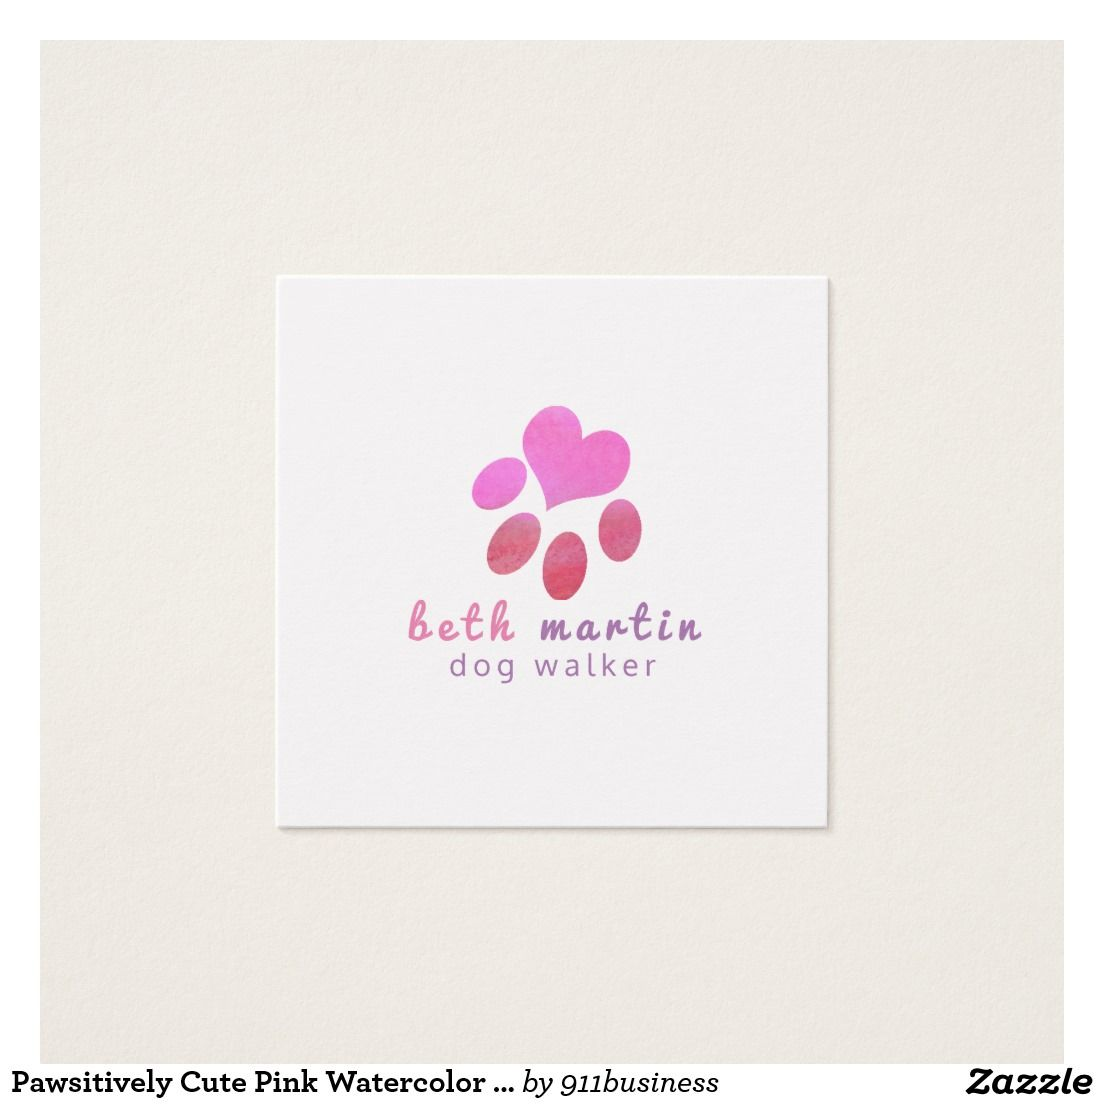 Pawsitively Cute Pink Watercolor Animal PETS Paw custom business ...